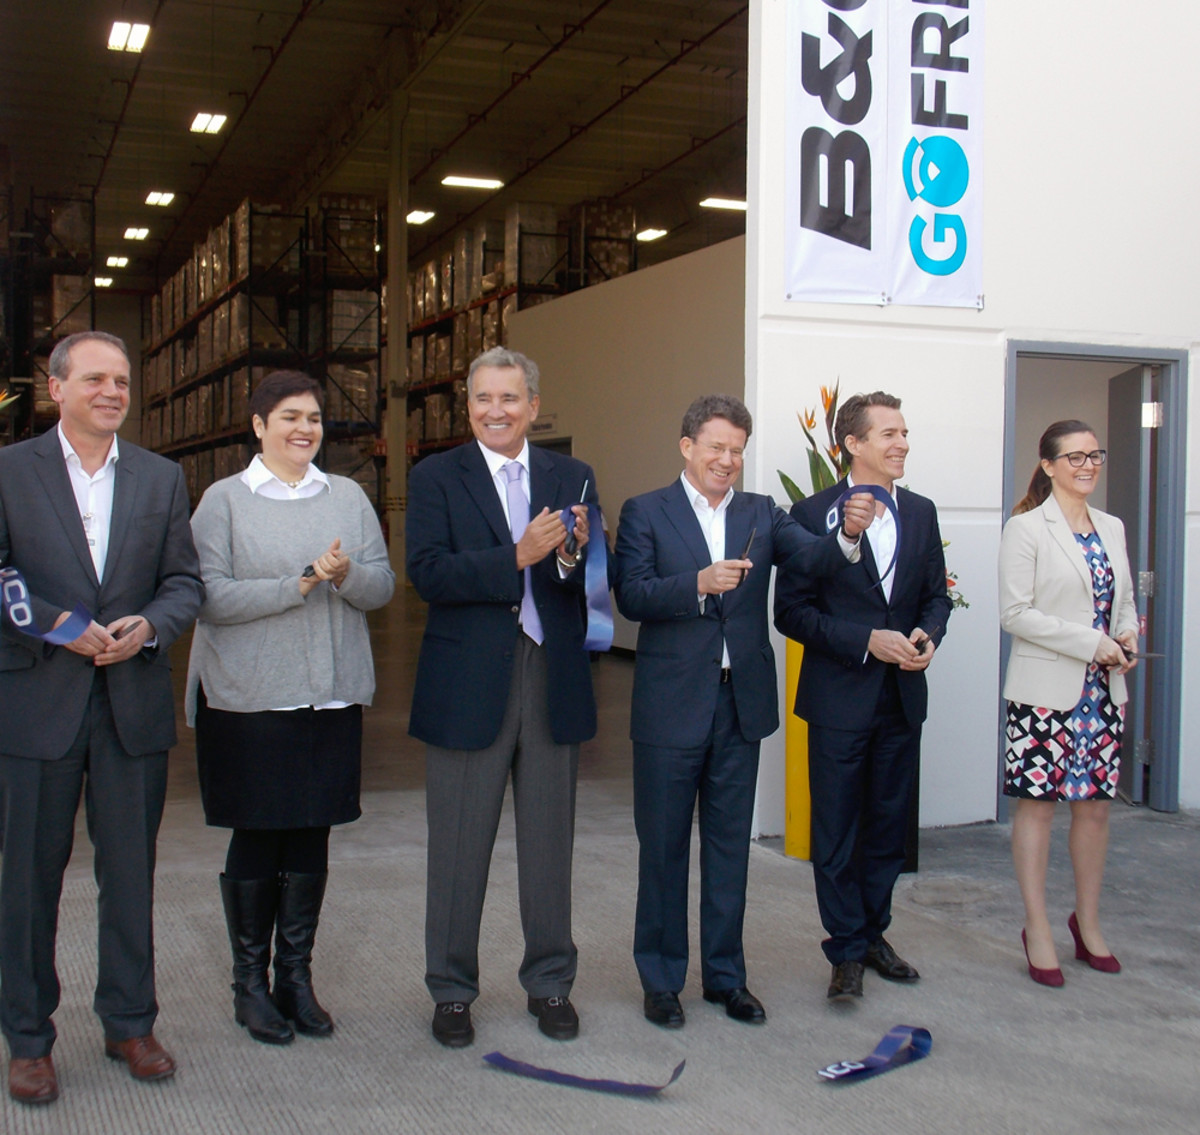 Jim Brailey (left) of Navico; Juanita Floriano, Baja California secretary of labor; Carlo Bonfante, Baja California secretary of economic development; Leif Ottosson, president and CEO of Navico; and Hugo Maurstad and Anita Hatherley of Navico are shown at the ribbon-cutting for the company's expanded manufacturing facility in Ensenada, Mexico.